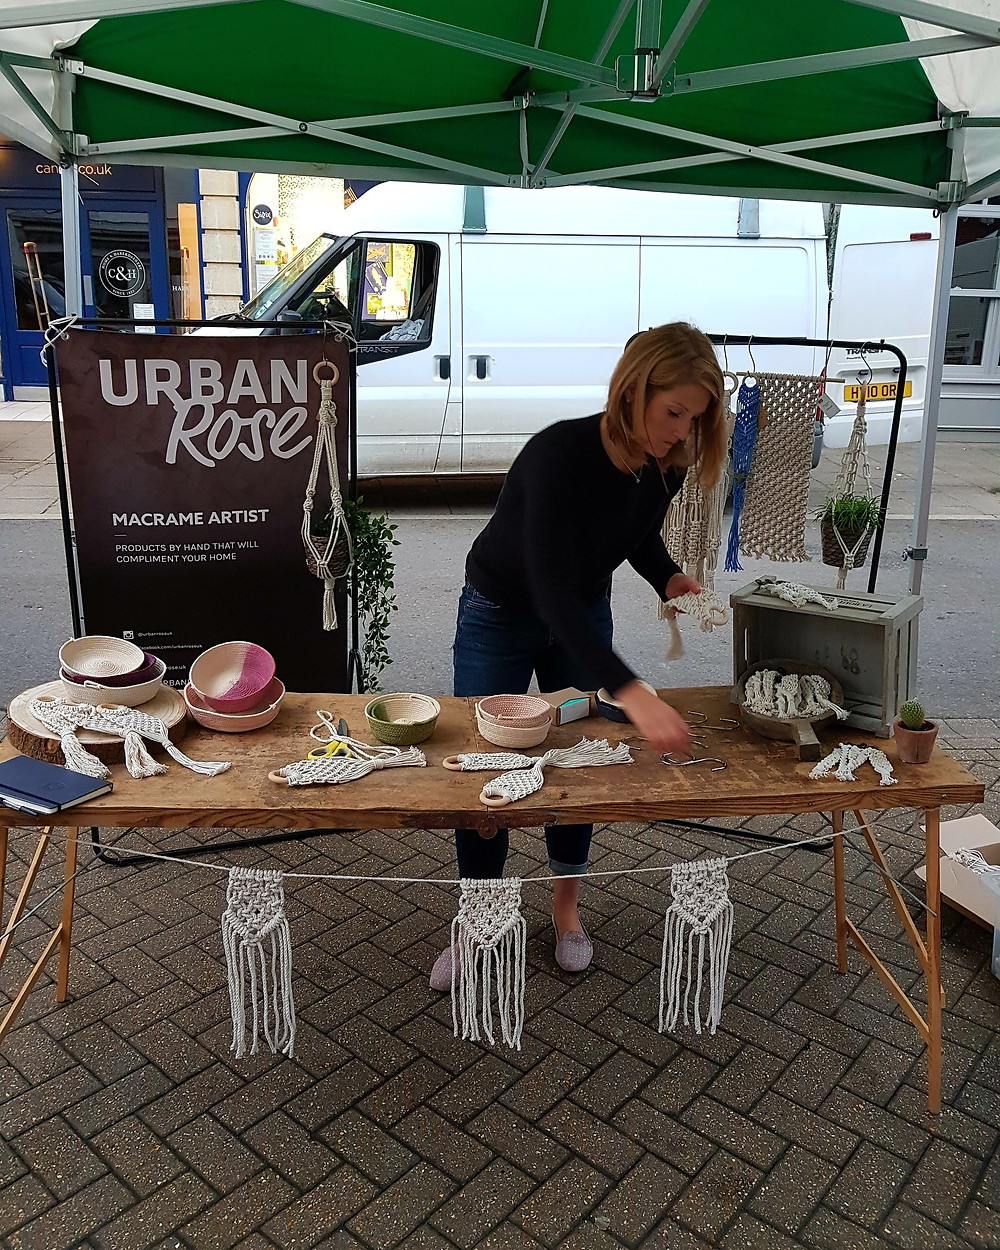 Macrame Artist attending to Craft stall with textiles art and Urban Rose backdrop